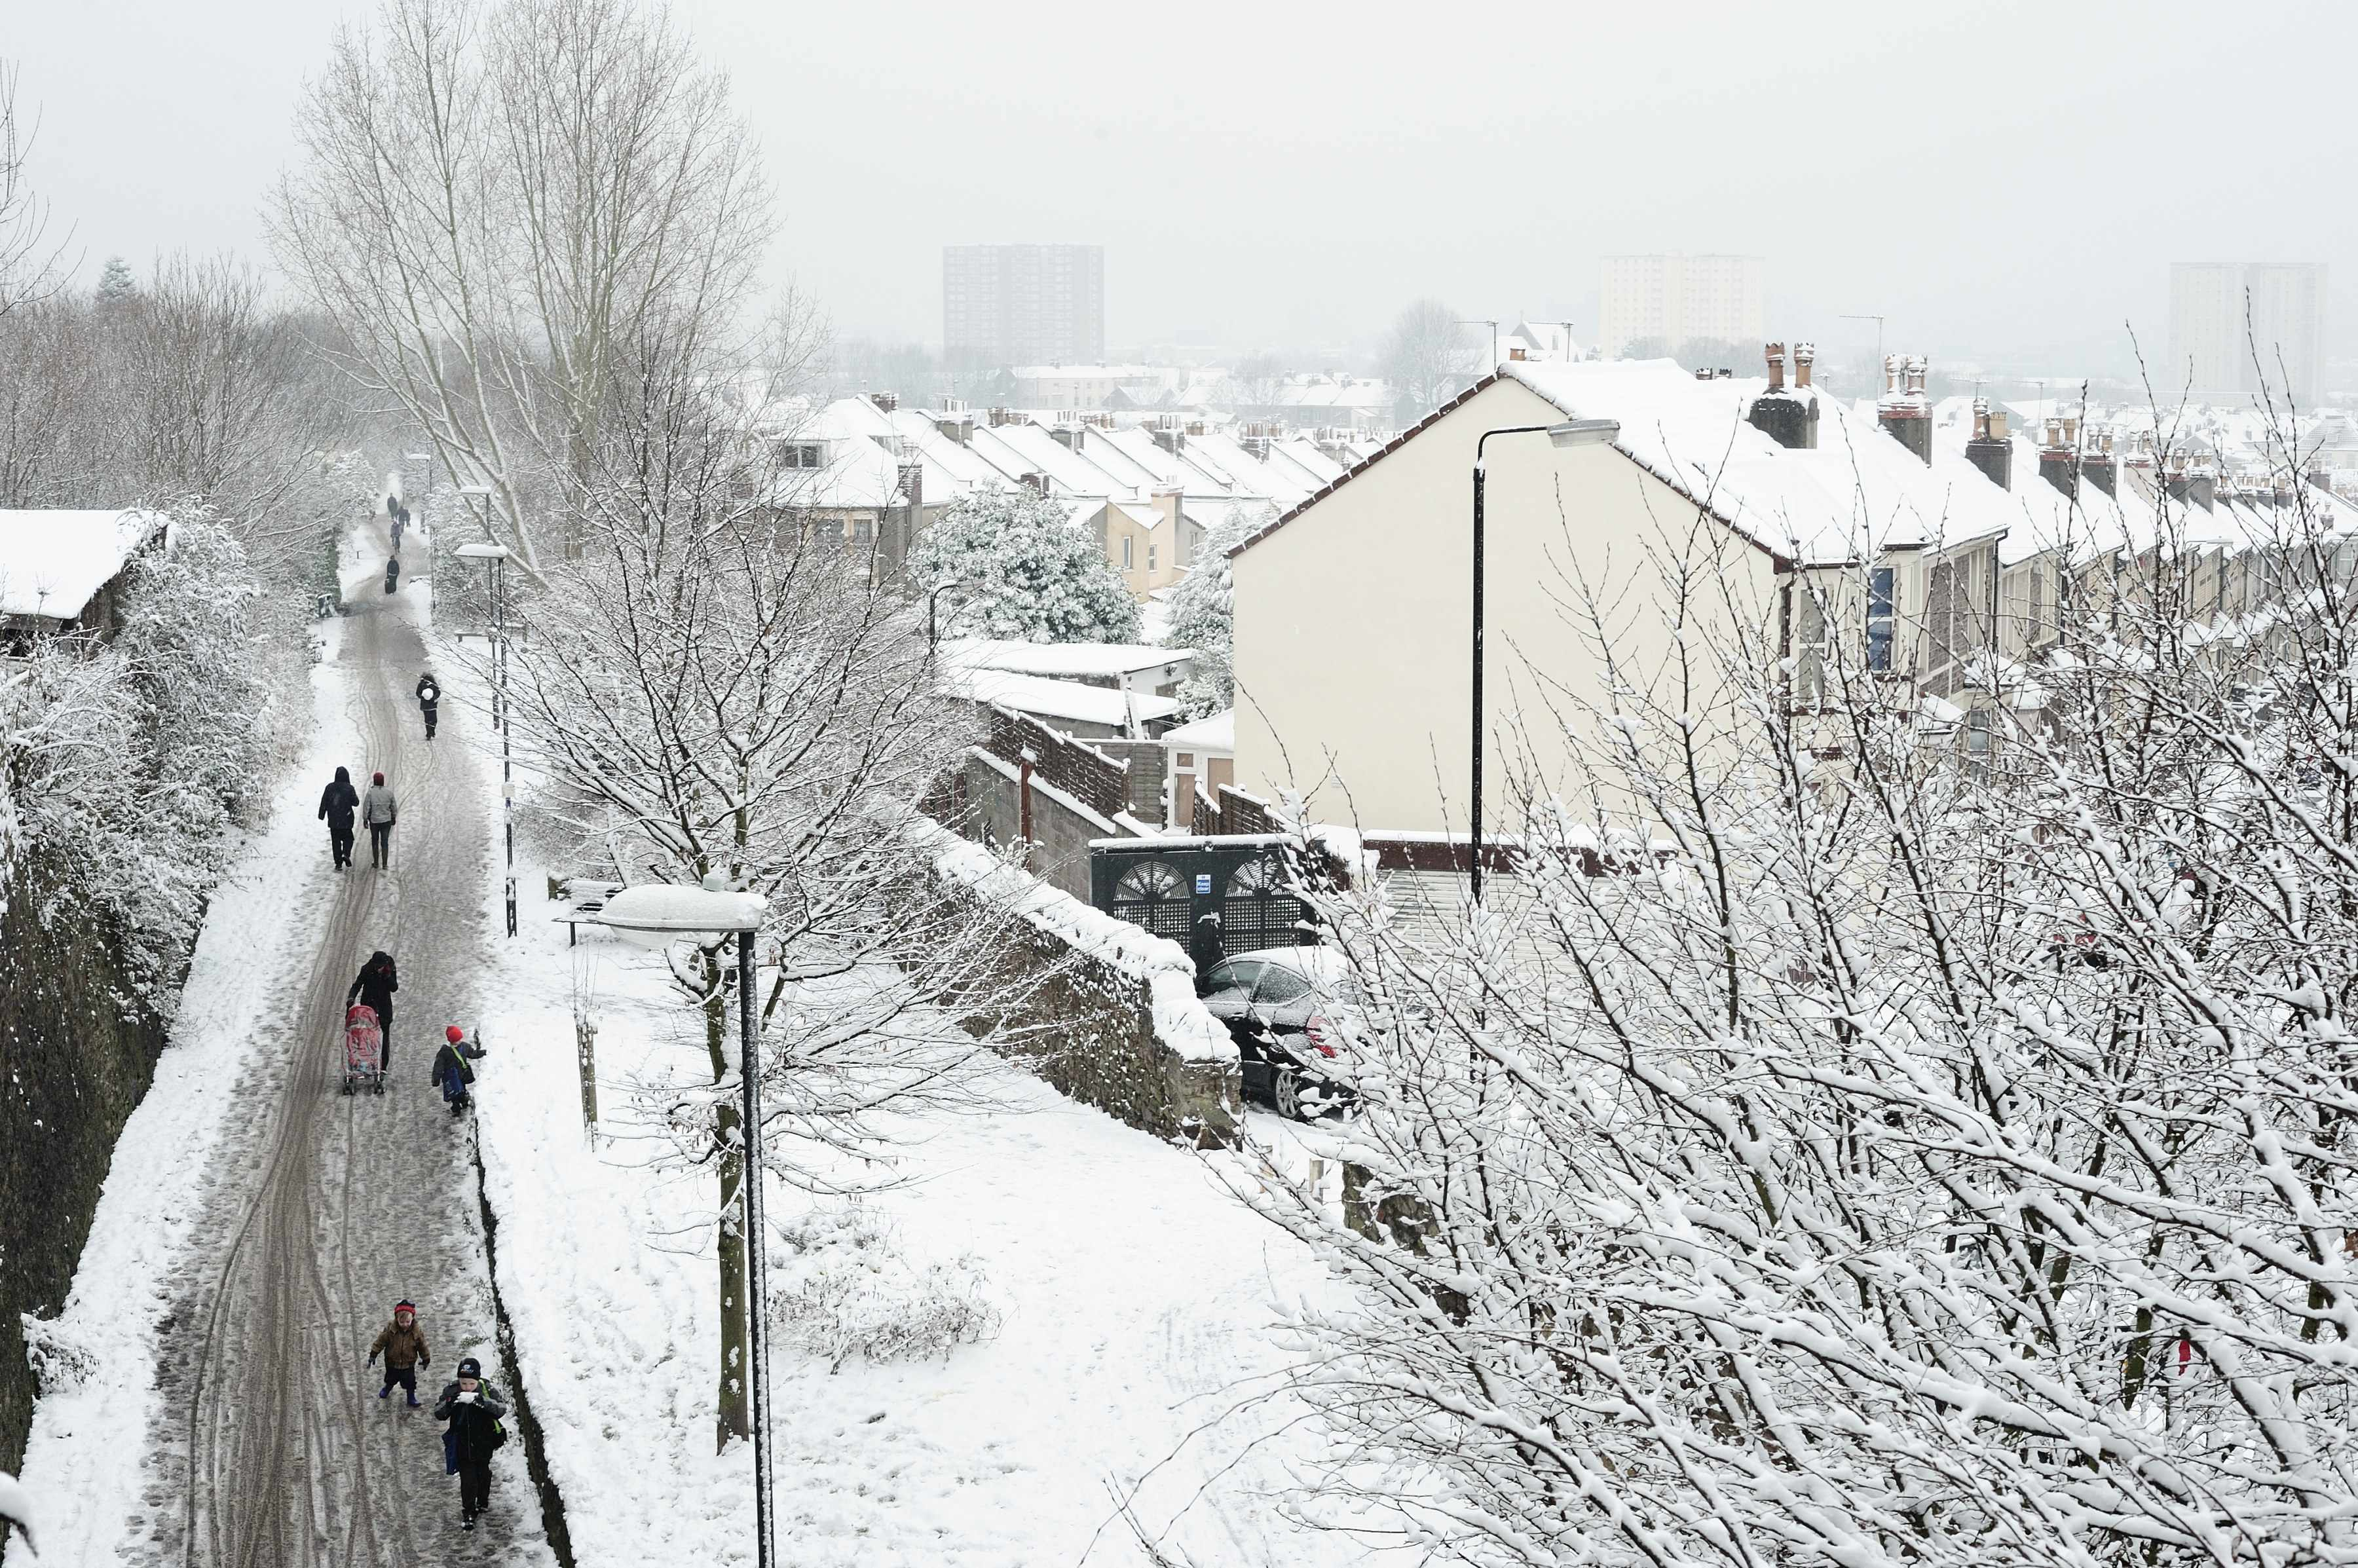 Traffic free path in the snow. Bristol and Bath Railway Path, National Route 4 at Easton (Devon Road Bridge looking west into city)